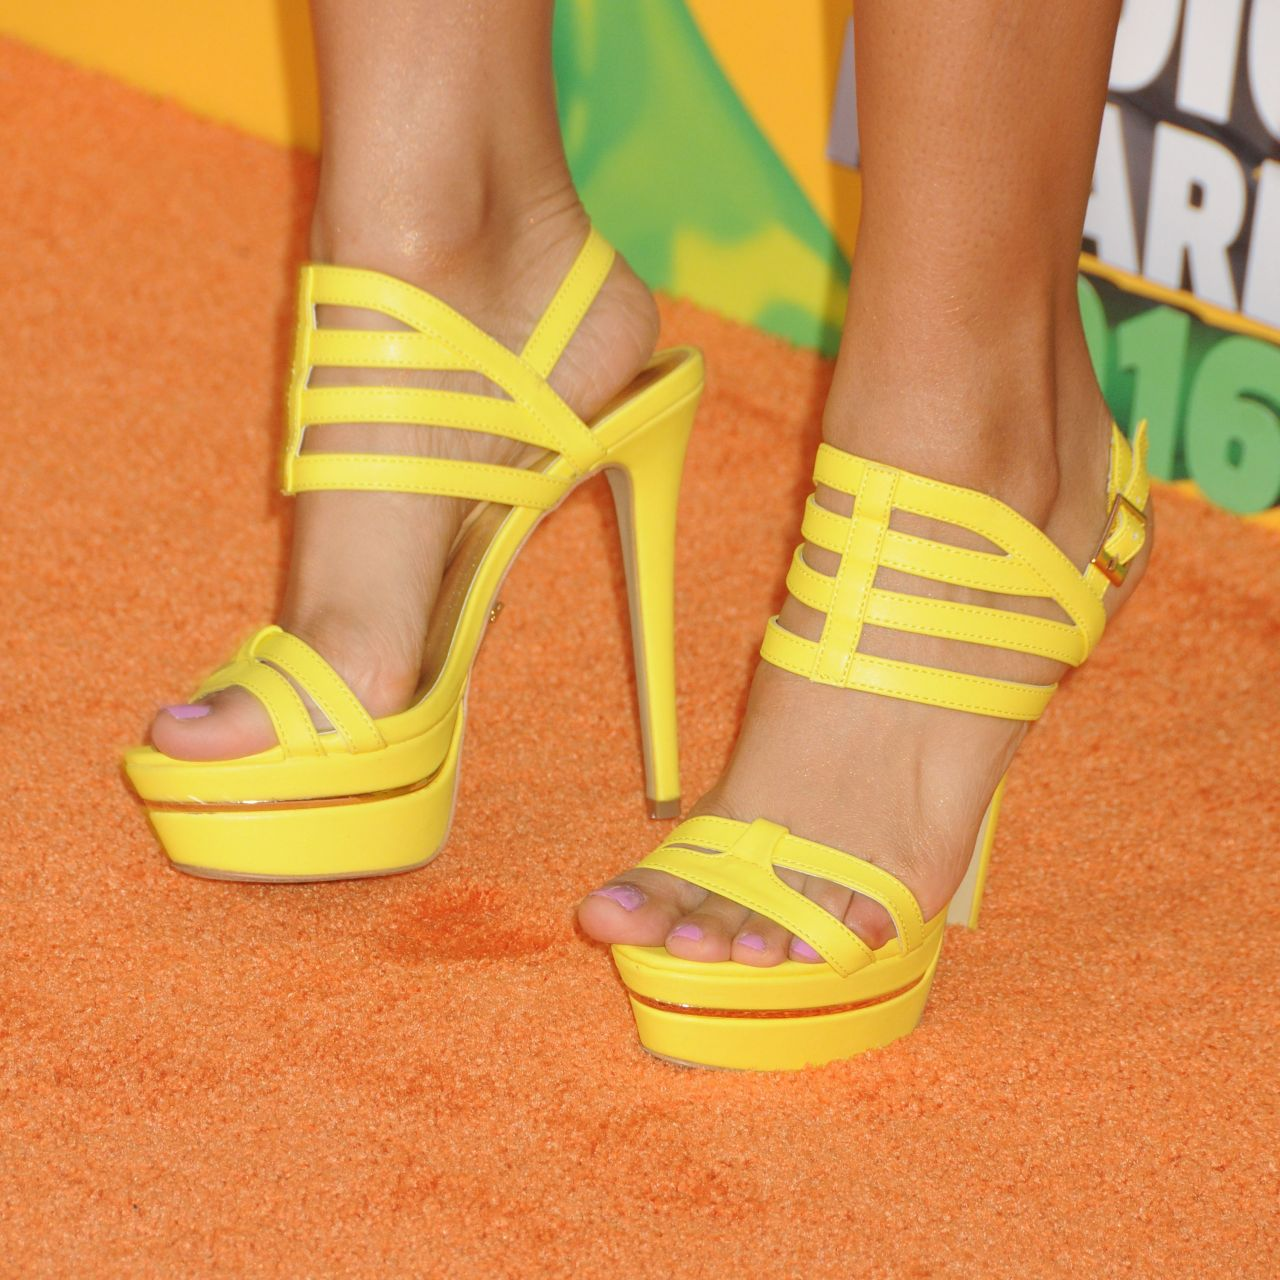 2016 Nickelodeon Kids' Choice Awards In